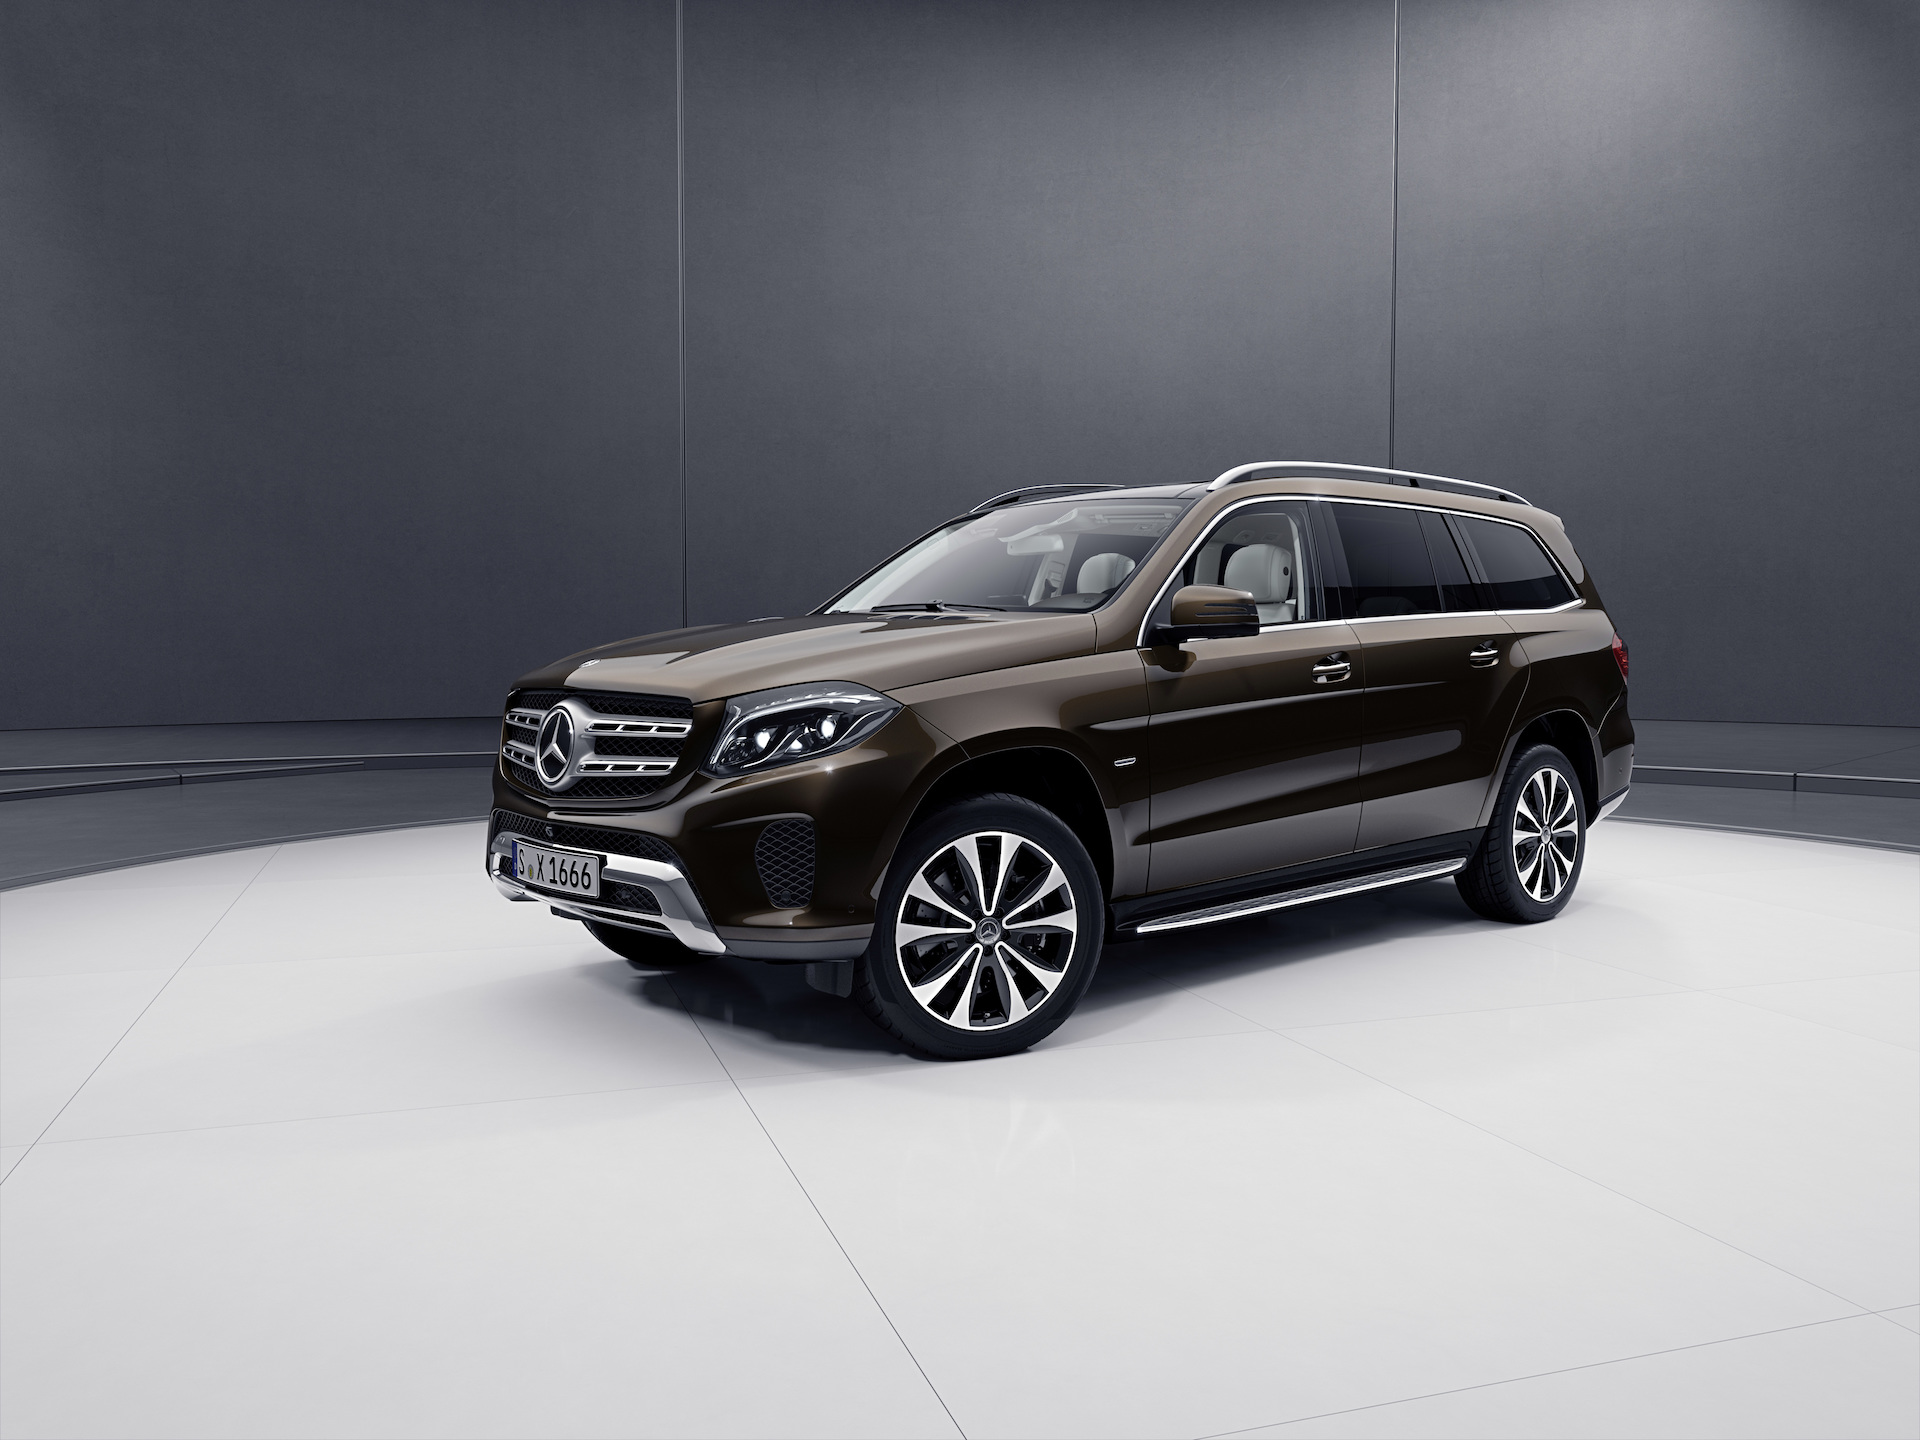 mercedes benz 2019 gls 2019 Mercedes Benz GLS Grand Edition turns up the luxury mercedes benz 2019 gls